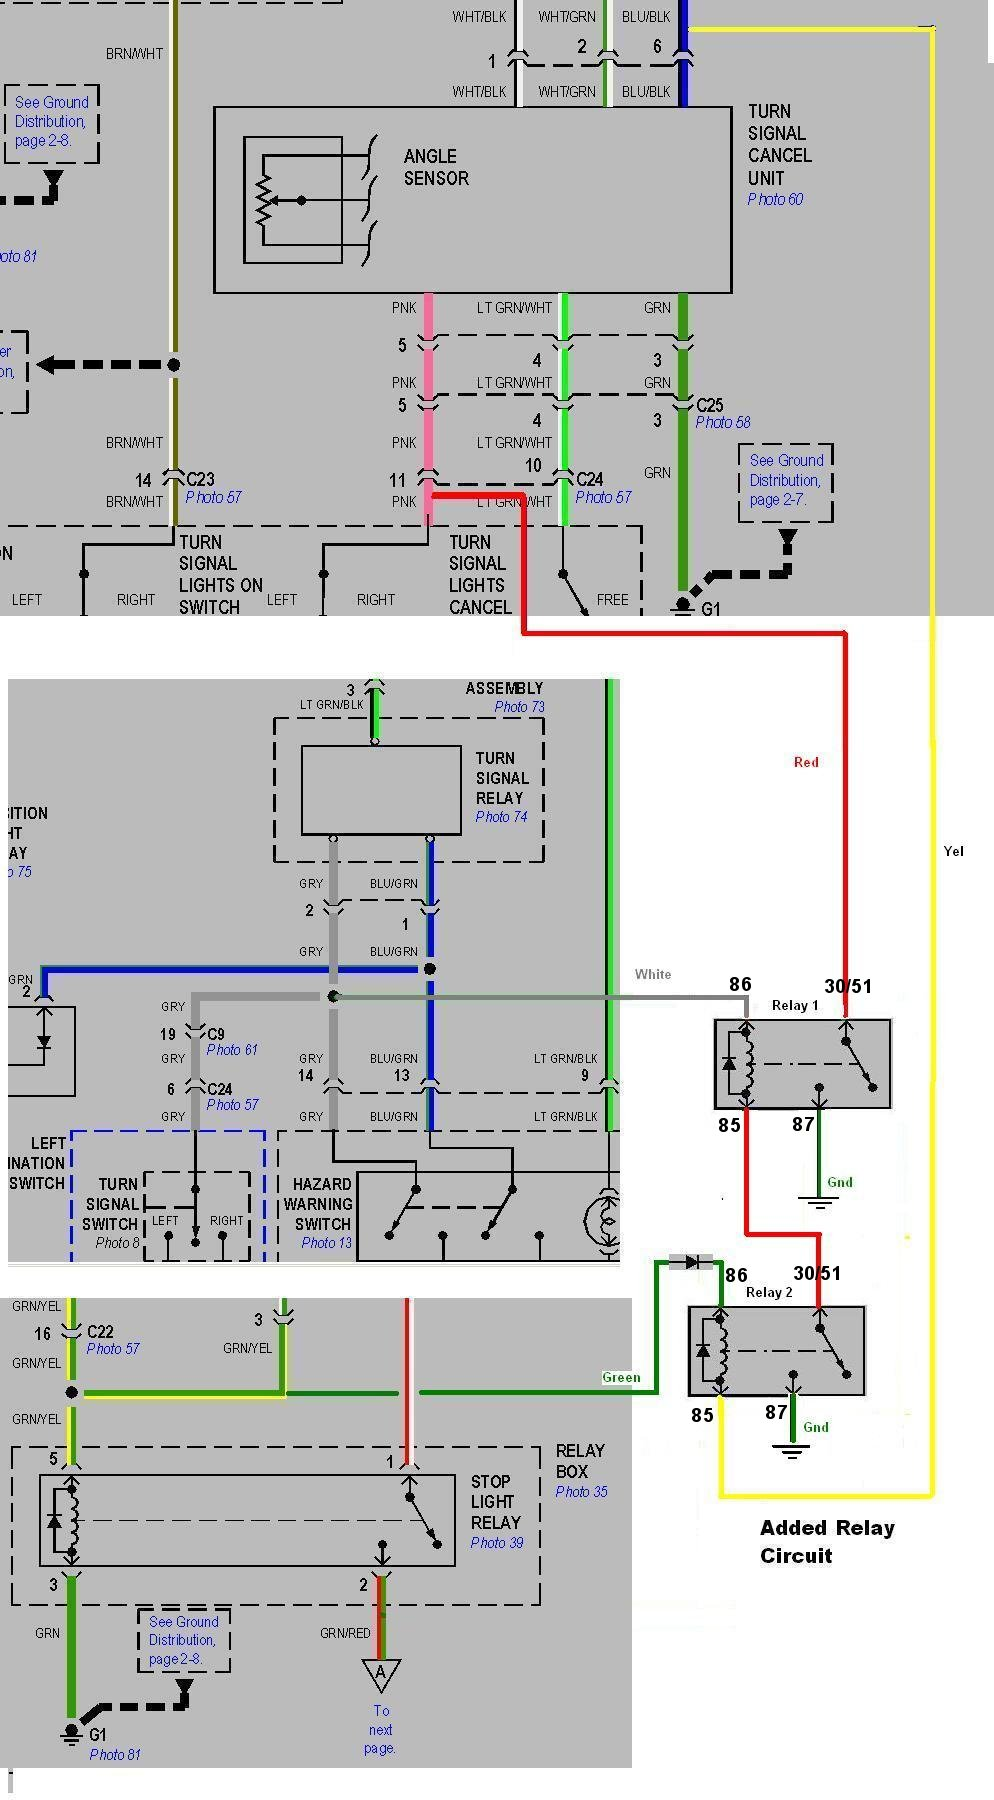 hight resolution of turn signal madness for the gl1800 6 pin trailer wiring diagram 2002 gl1800 wiring diagram